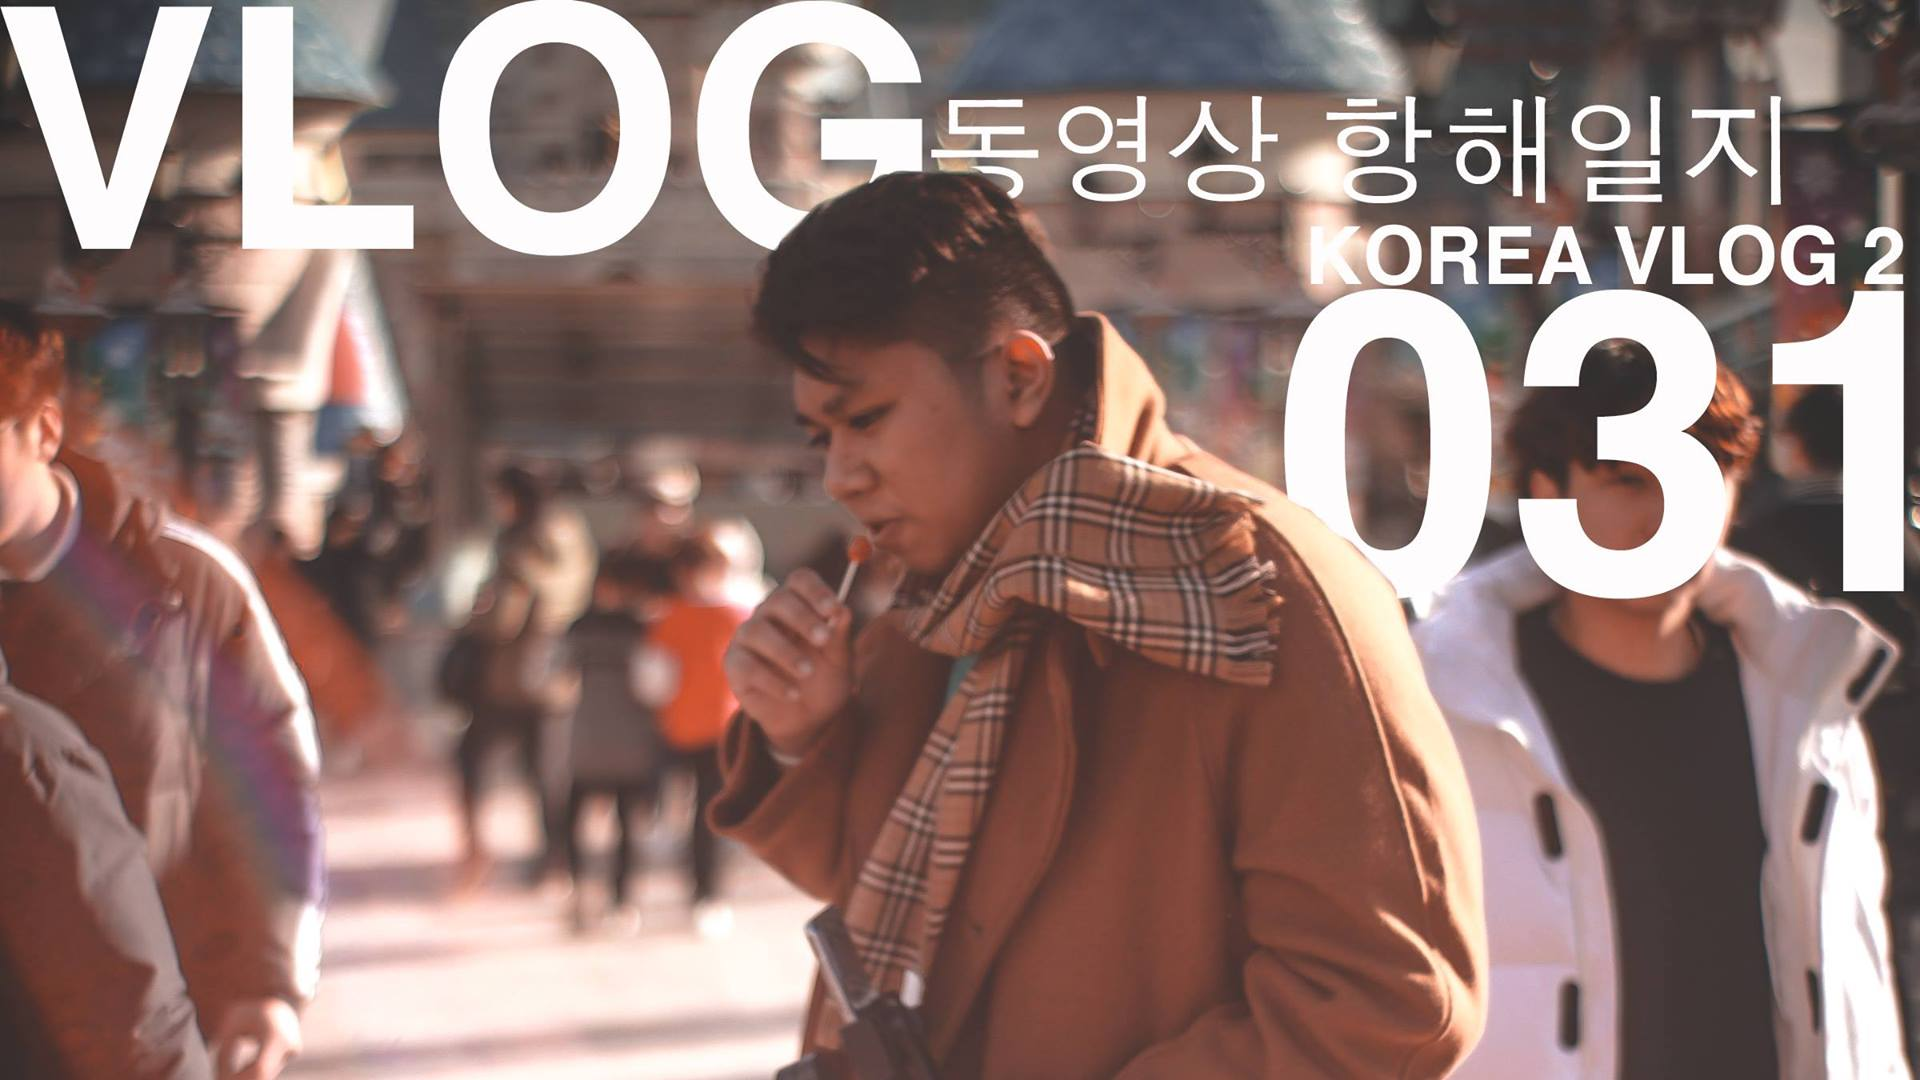 VLOG031: CHRISTMAS IN KOREA (DAY 2) | KOREA VLOG SERIES